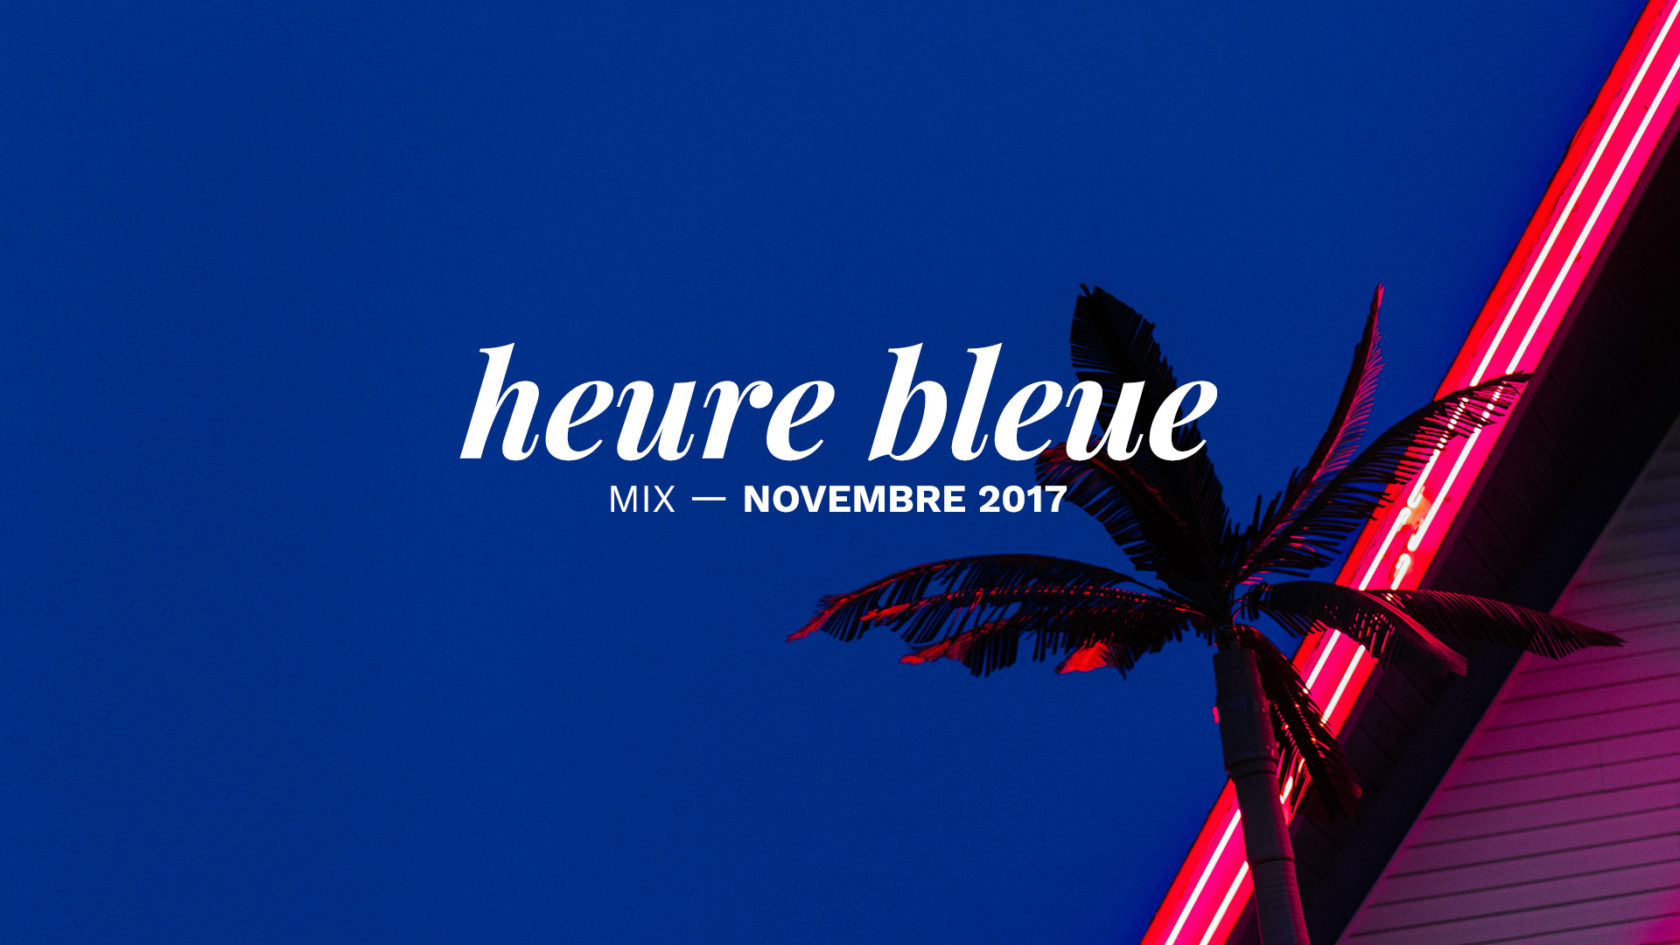 photo mixtape heure bleue novembre